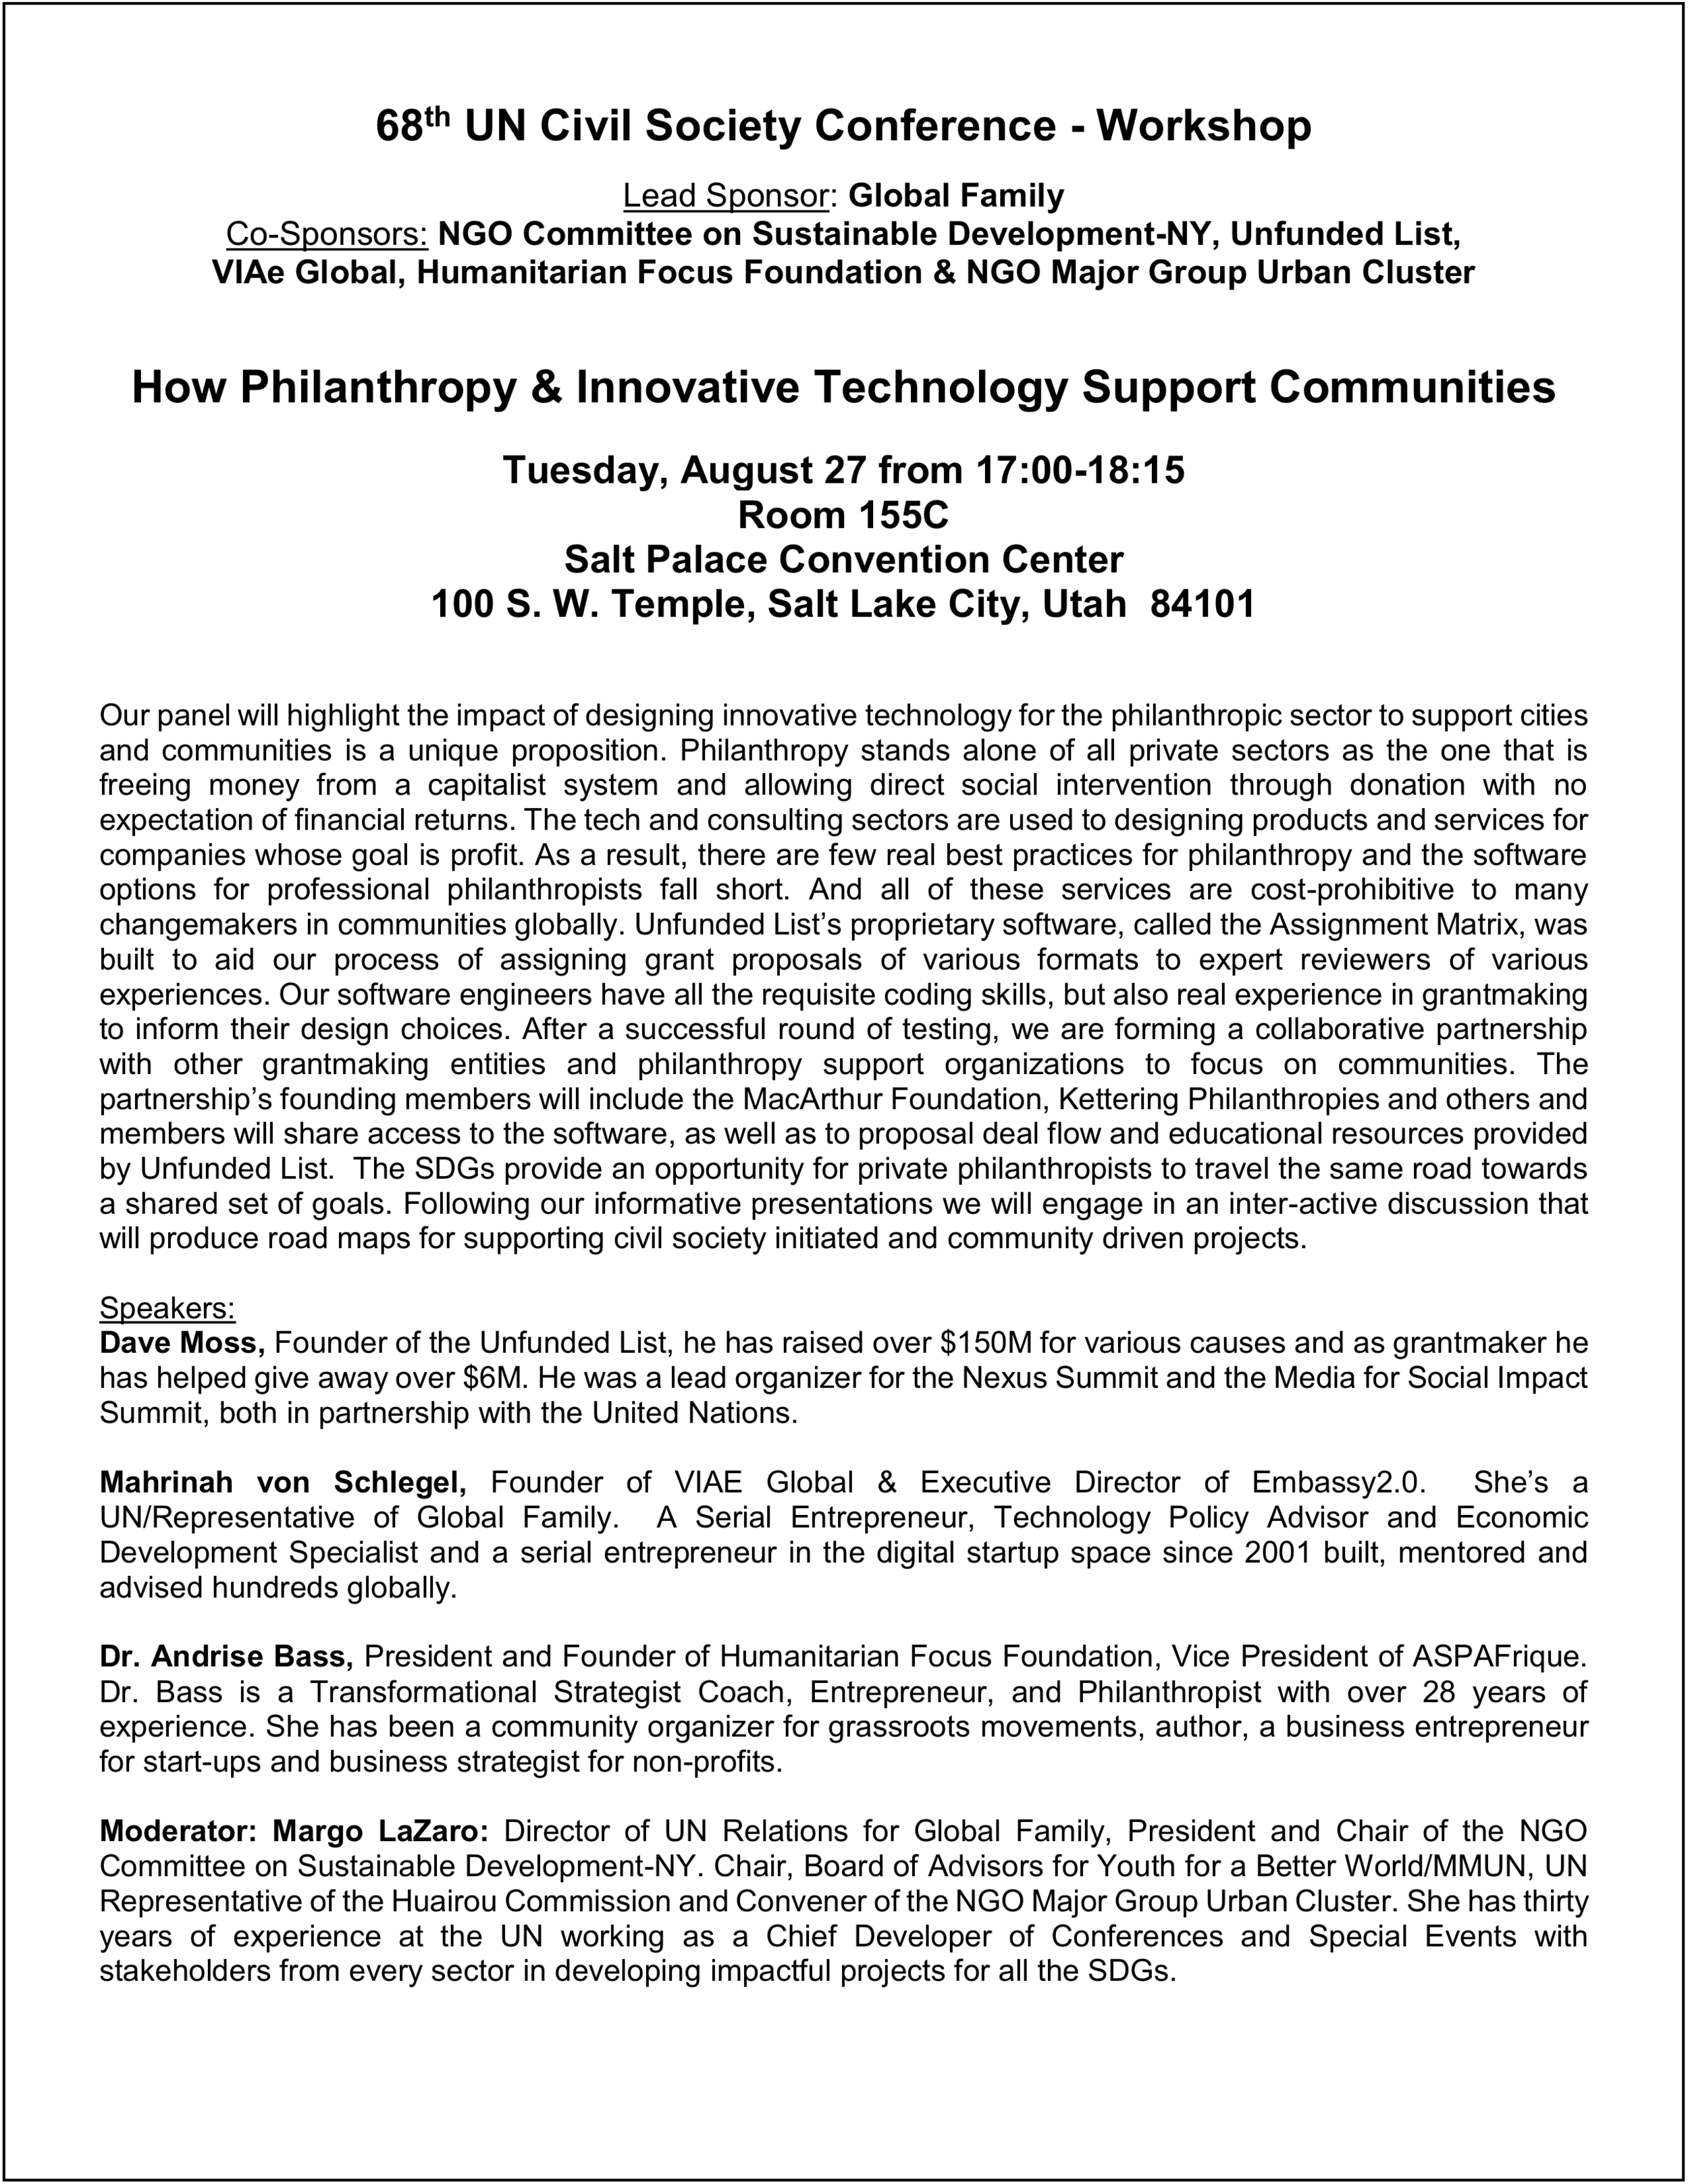 How Philanthropy & Innovative Technology Support Communities- C2.docx2.png